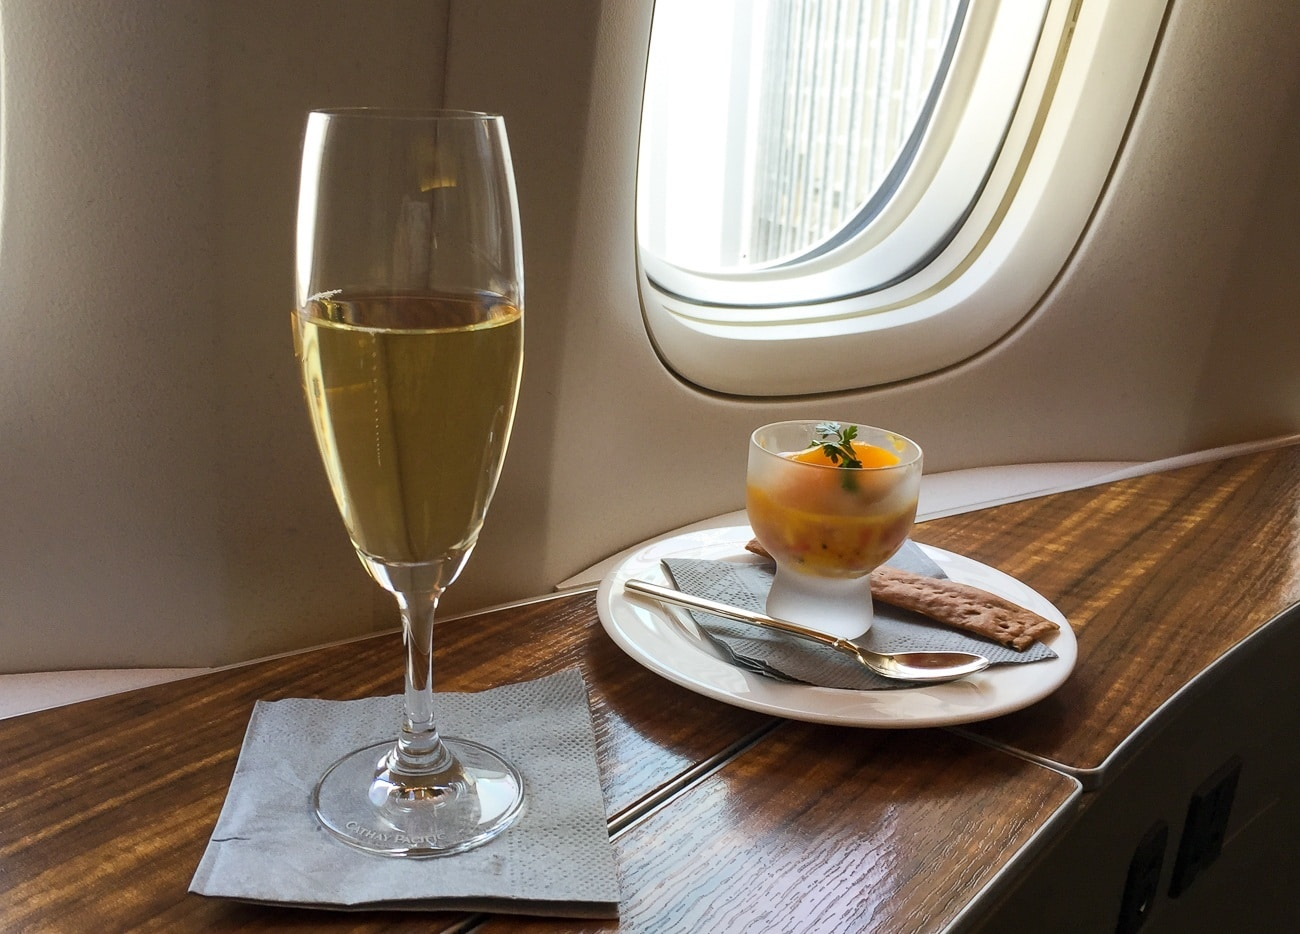 Krug champagne and an amuse bouche in Cathay Pacific's first class